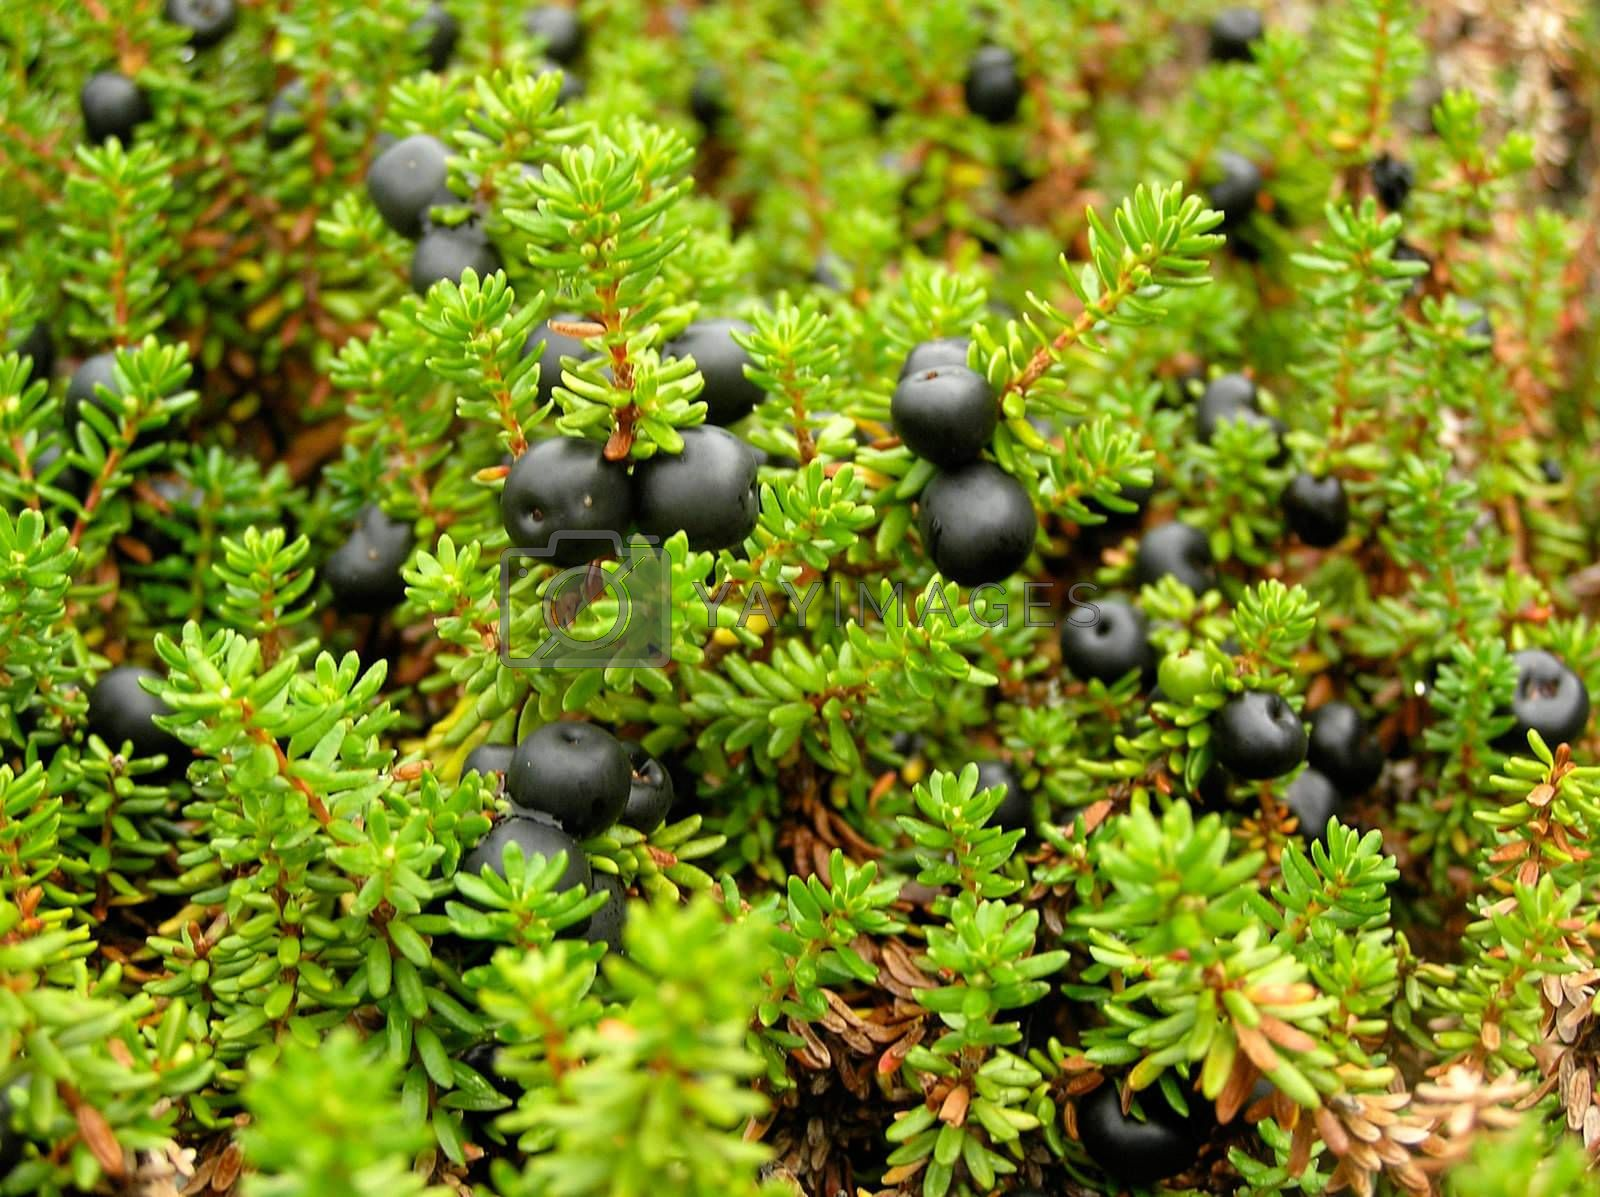 The black ripe northern wood berry growing in damp wood